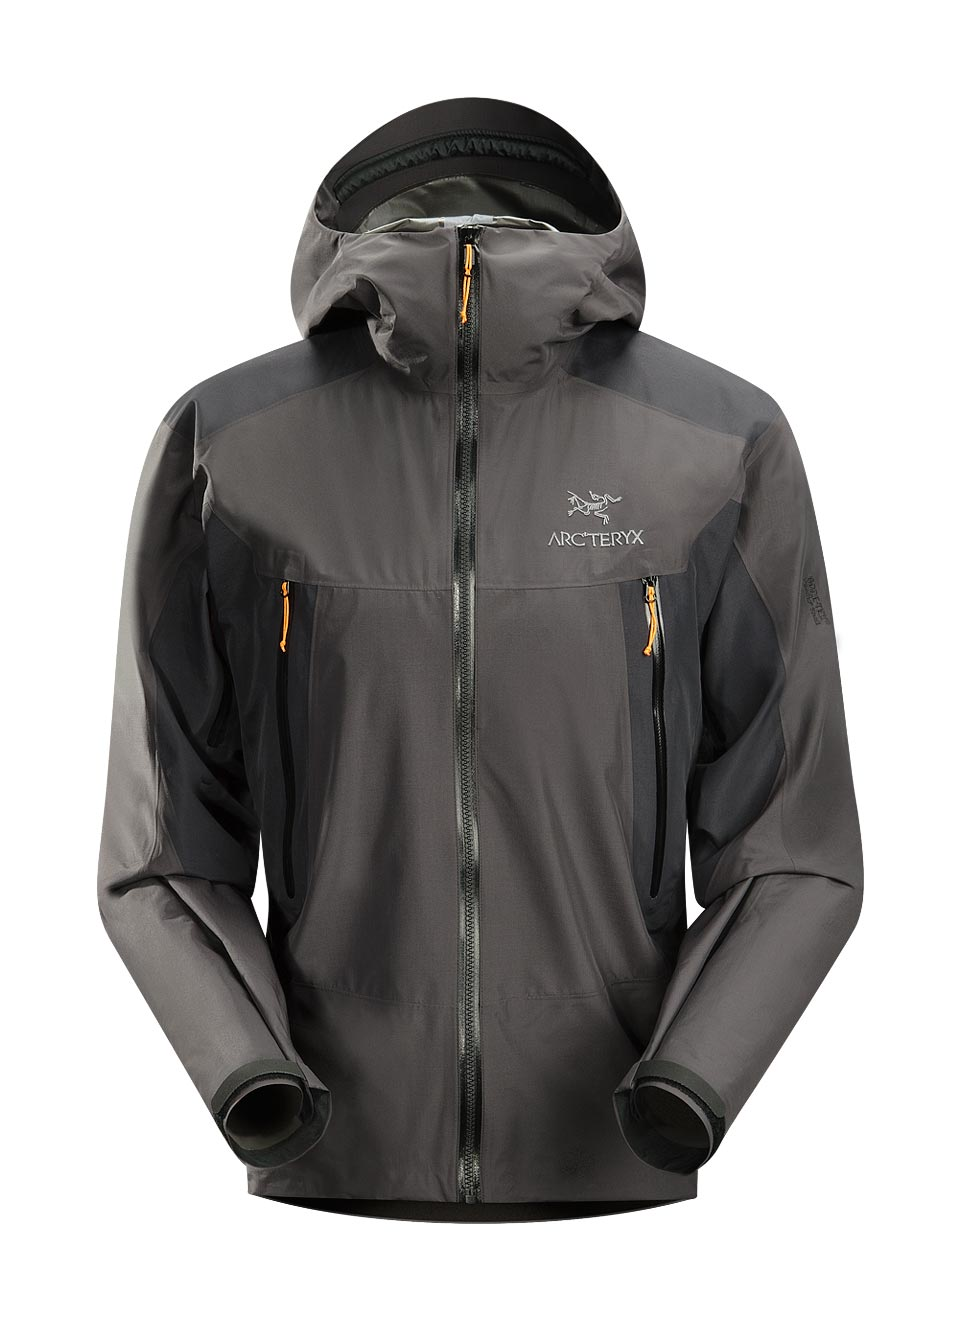 Arcteryx Jackets Men Black bird Alpha SL Hybrid Jacket - New